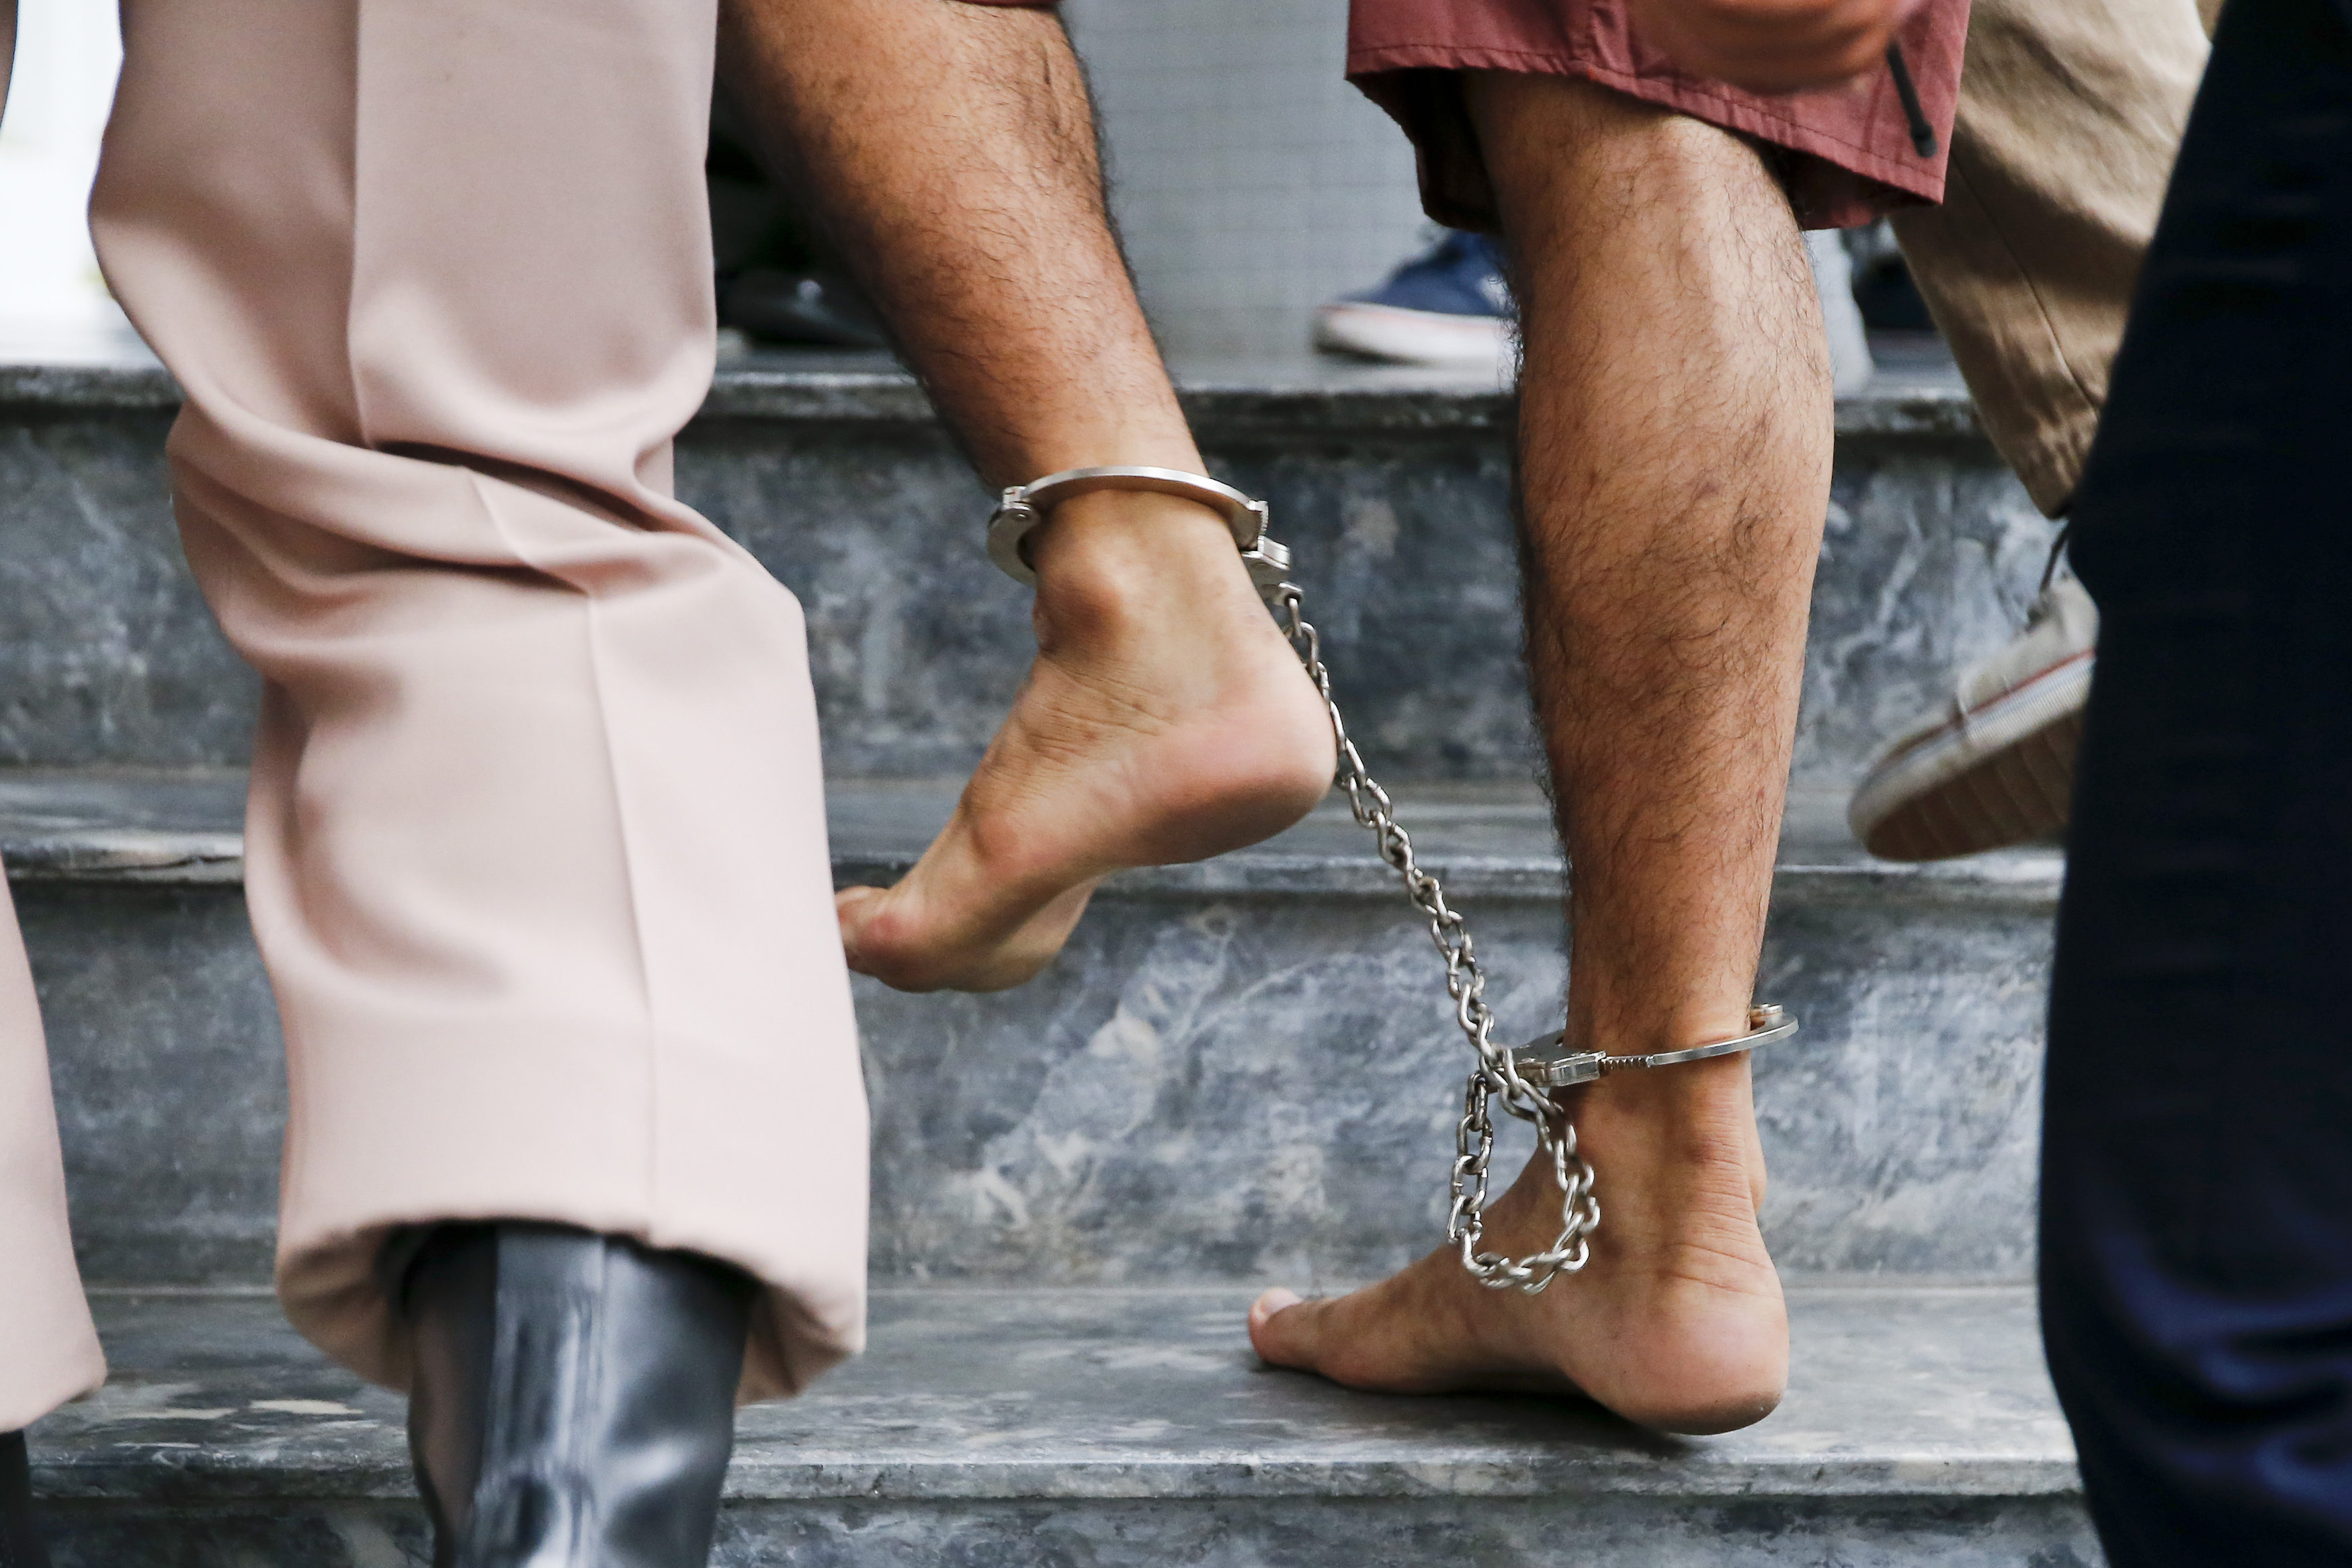 The shackled feet of a bombing suspect in Bangkok, Thailand, are seen as he is escorted by officers and prison personnel to Military Court Feb. 16. Pope Francis asks world leaders for a Jubilee Year moratorium on the death penalty. (CNS photo/Diego Azubel, EPA)  See POPE-ANGELUS-DEATH-PENALTY Feb. 22, 2016.